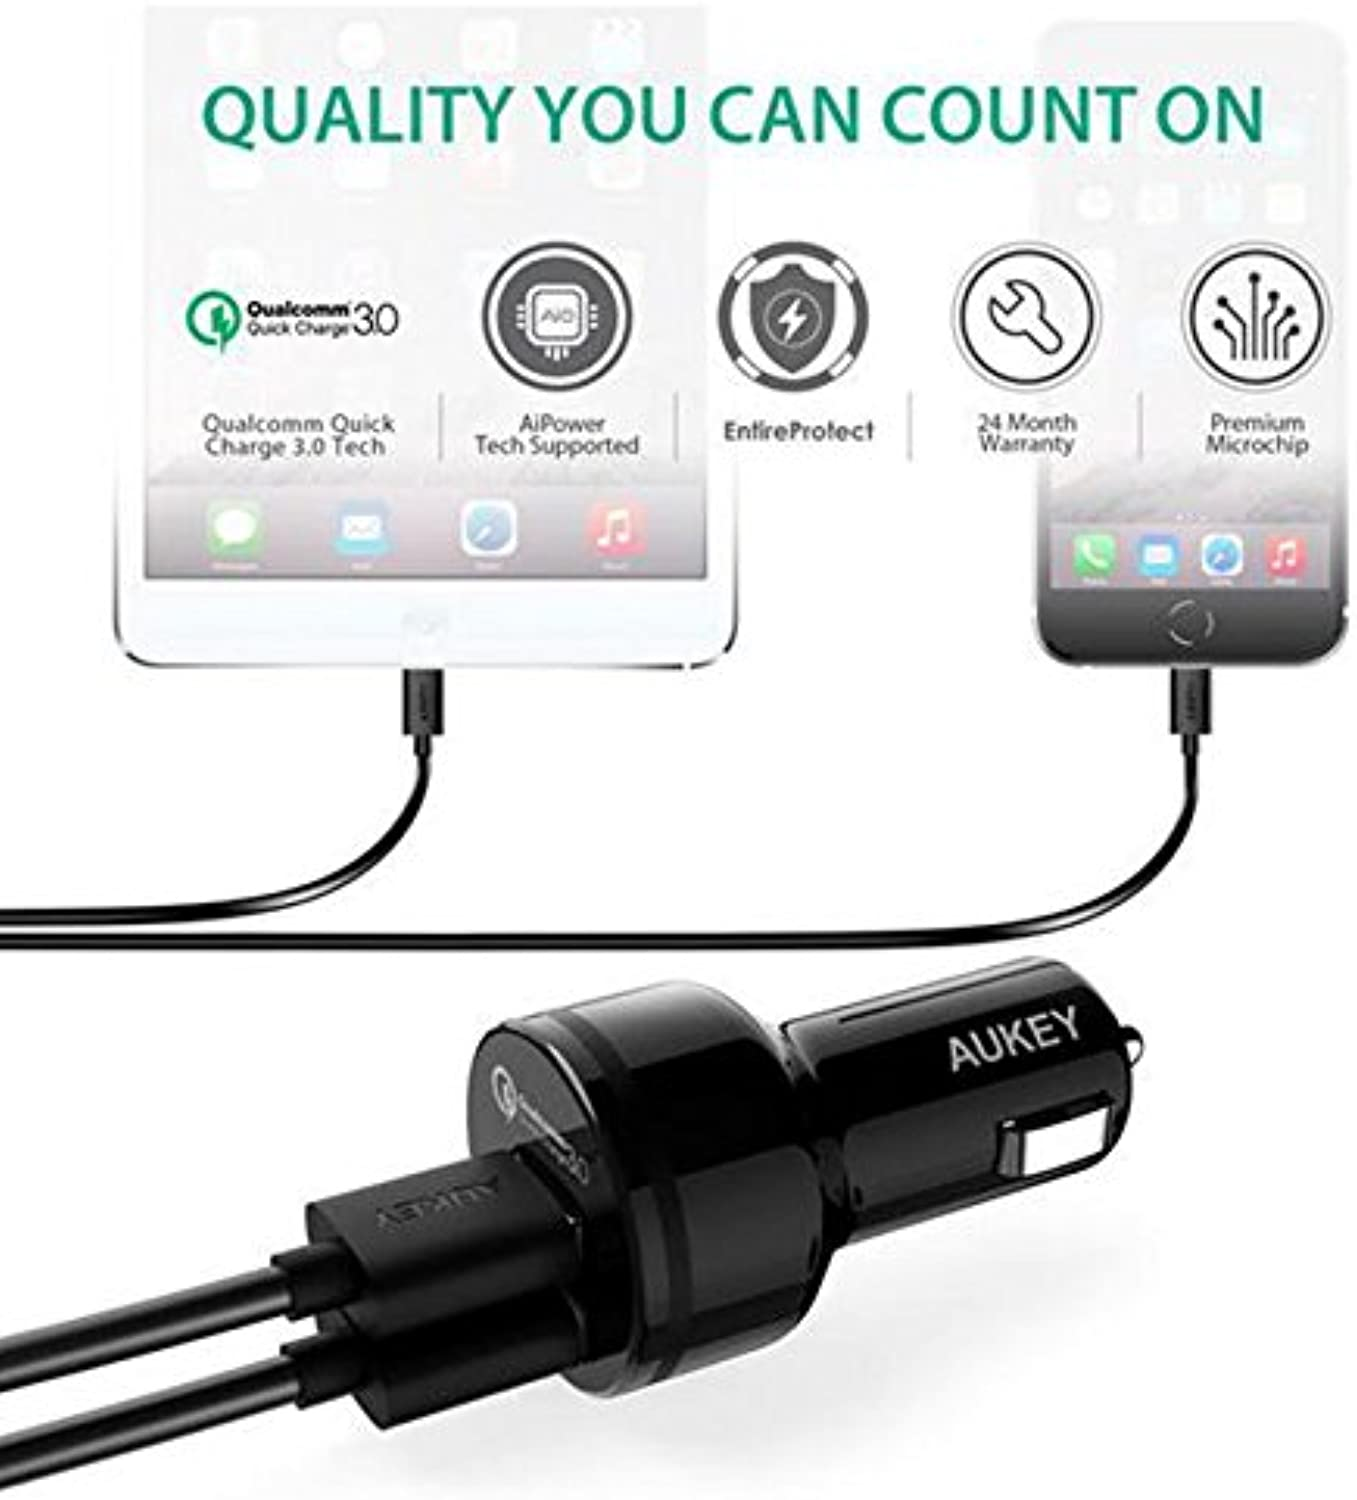 Trolax(TM) For Qualcomm Quick 3.0 Charger Car Charge 5V 2A Quick 2 Dual Port Output QC3.0 USB Car Charging Adapter For Smart Phone